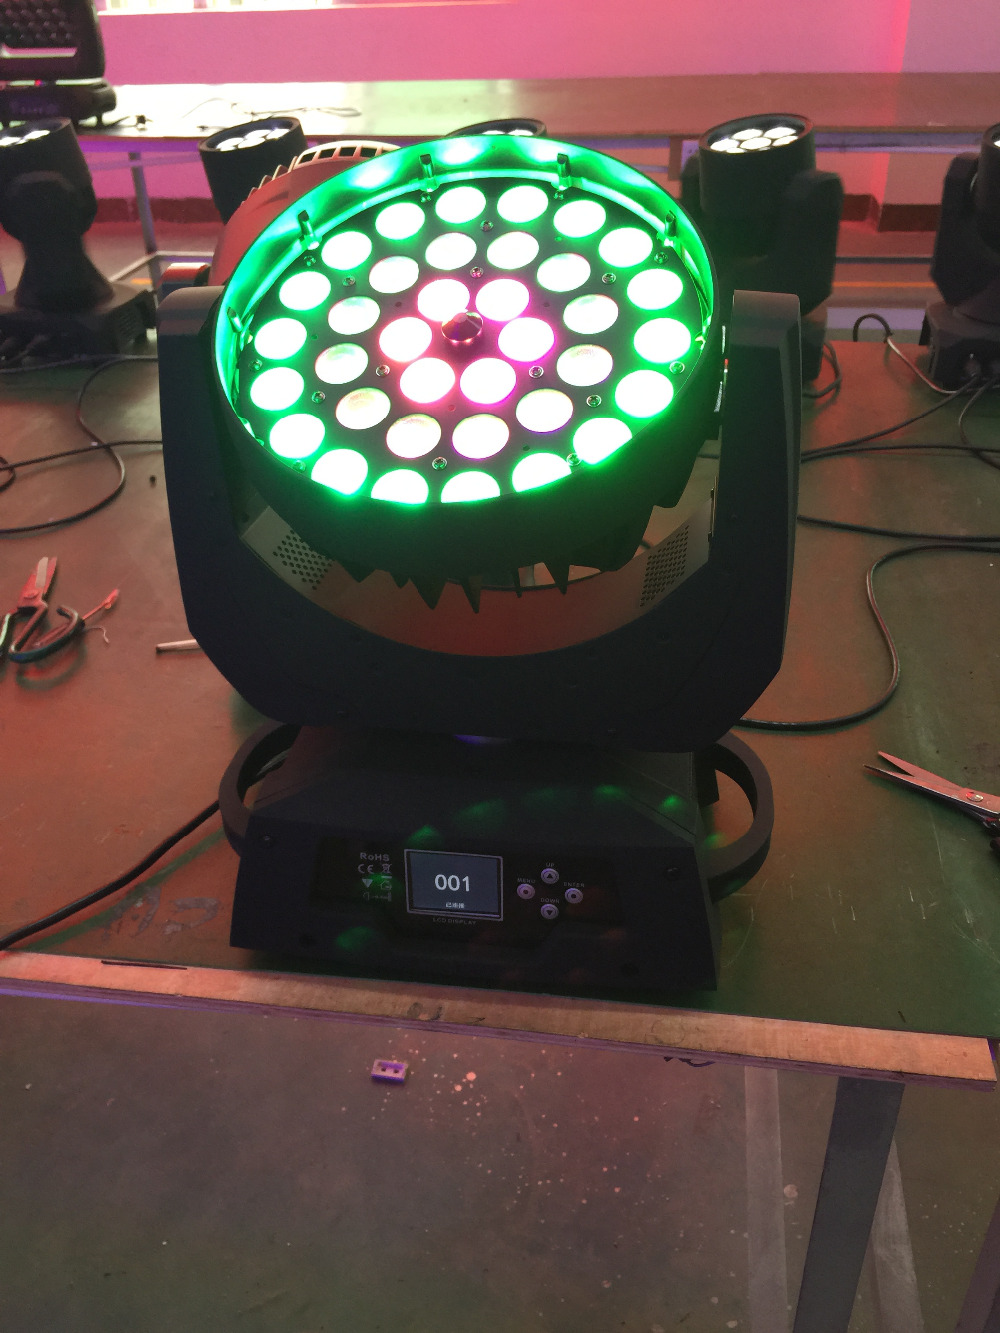 4X 36*18w led moving head light with 3 Ring Control Circle effect RGBWY+UV 6in1 zoom wash light night club disco lighting